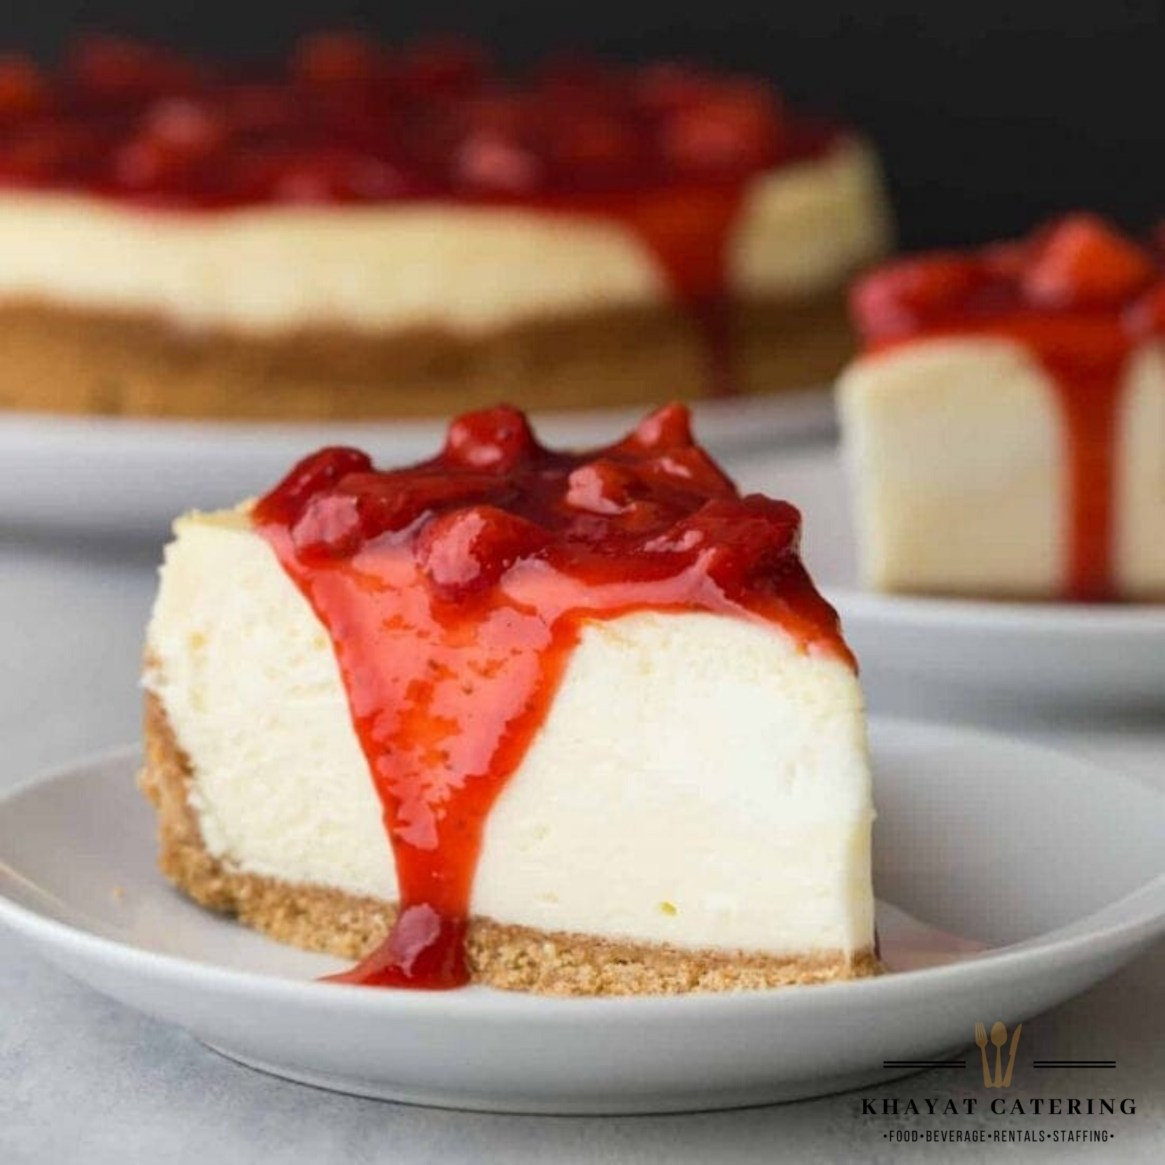 Khayat Catering strawberry cheesecake